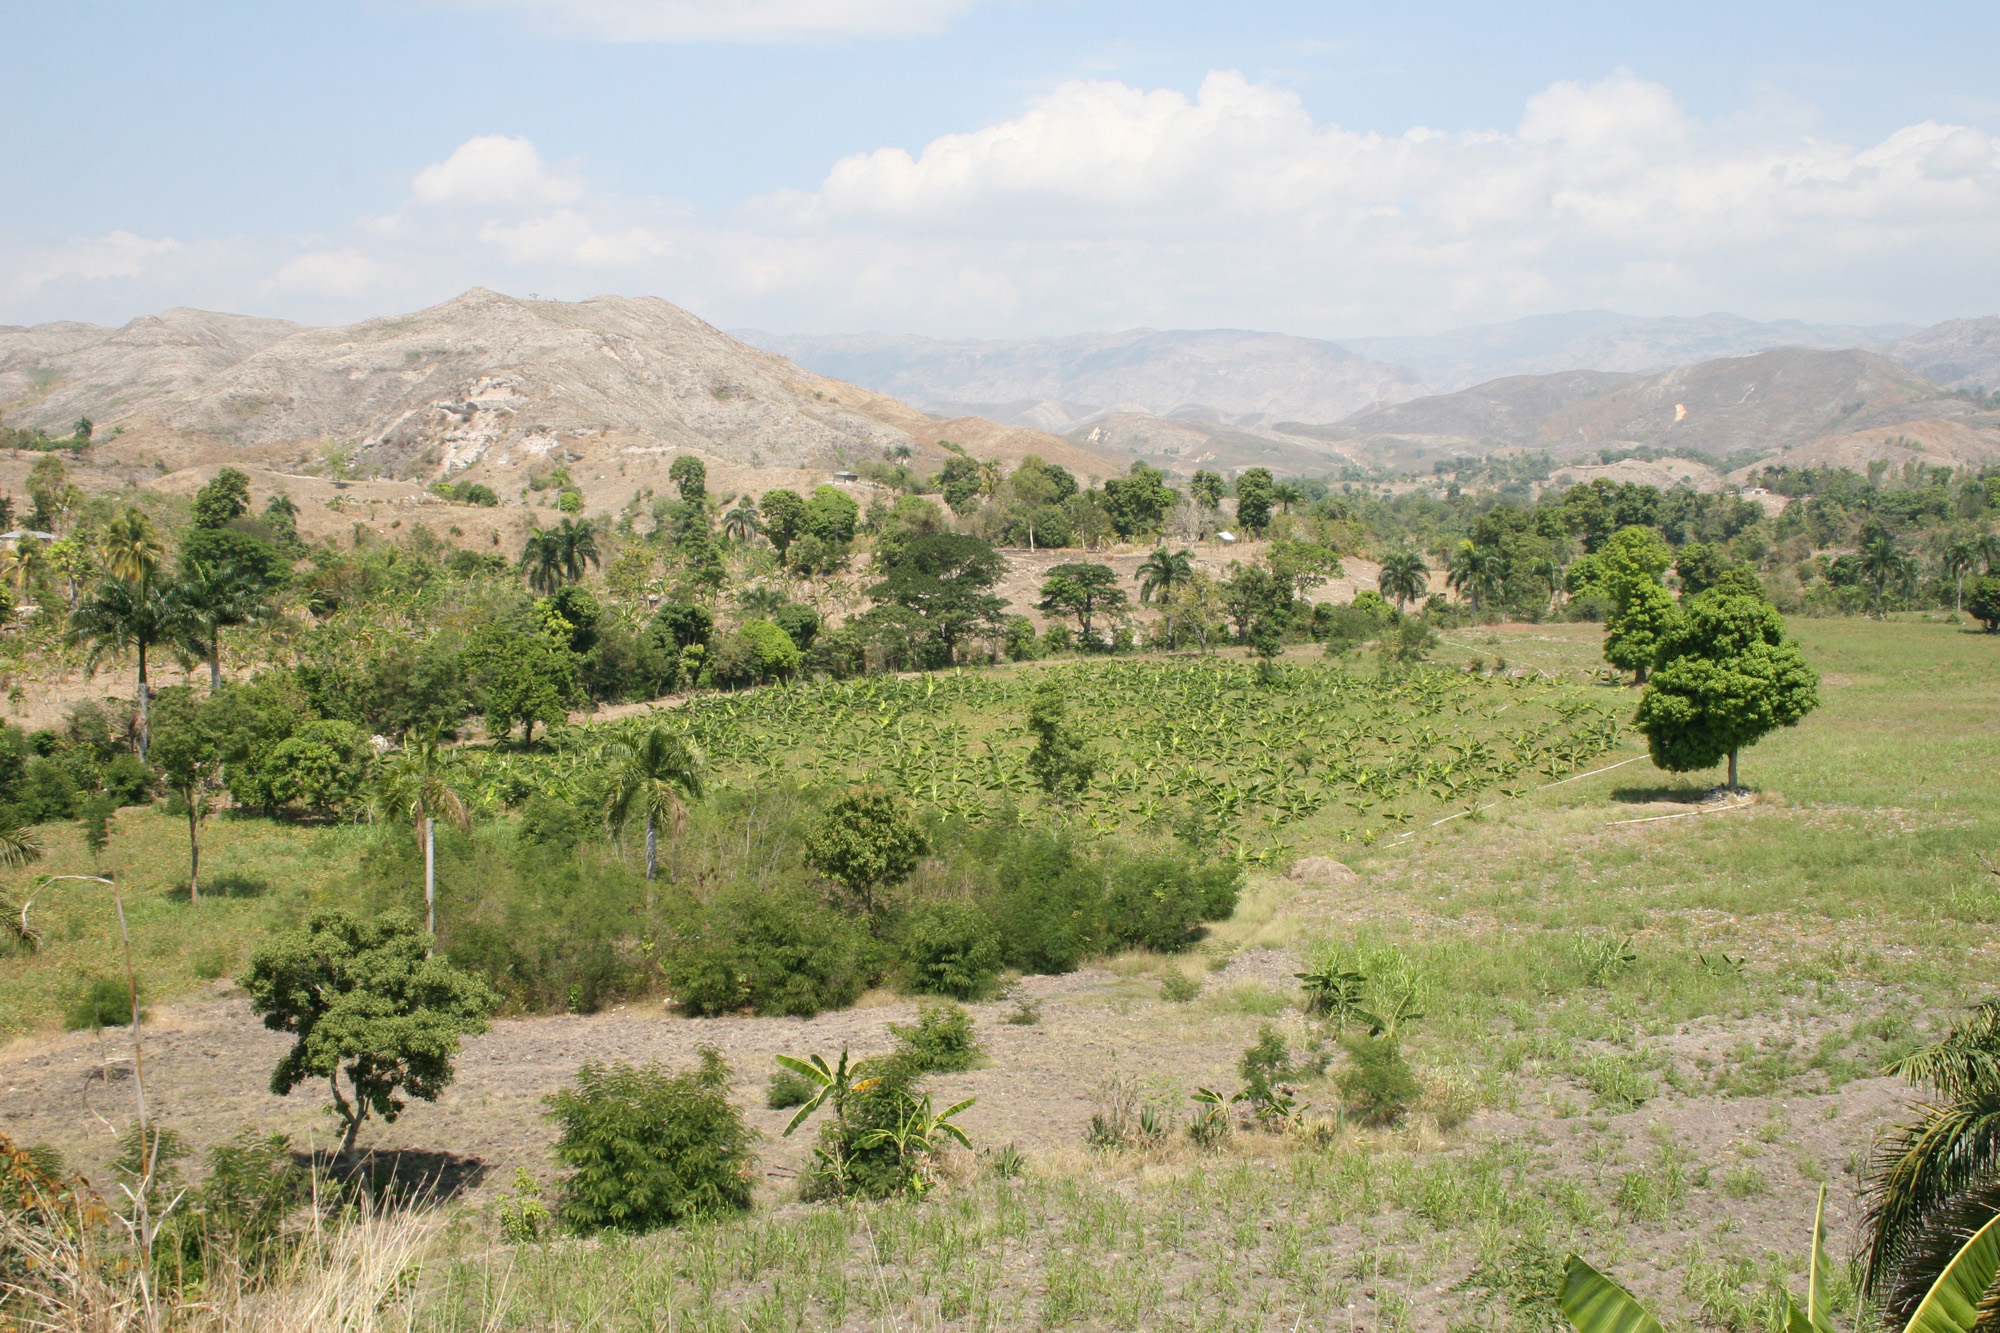 This 30-acre Zanmi Agrikol farm is an unusual oasis found among the deforested, eroded mountains stretching through much of Haiti.